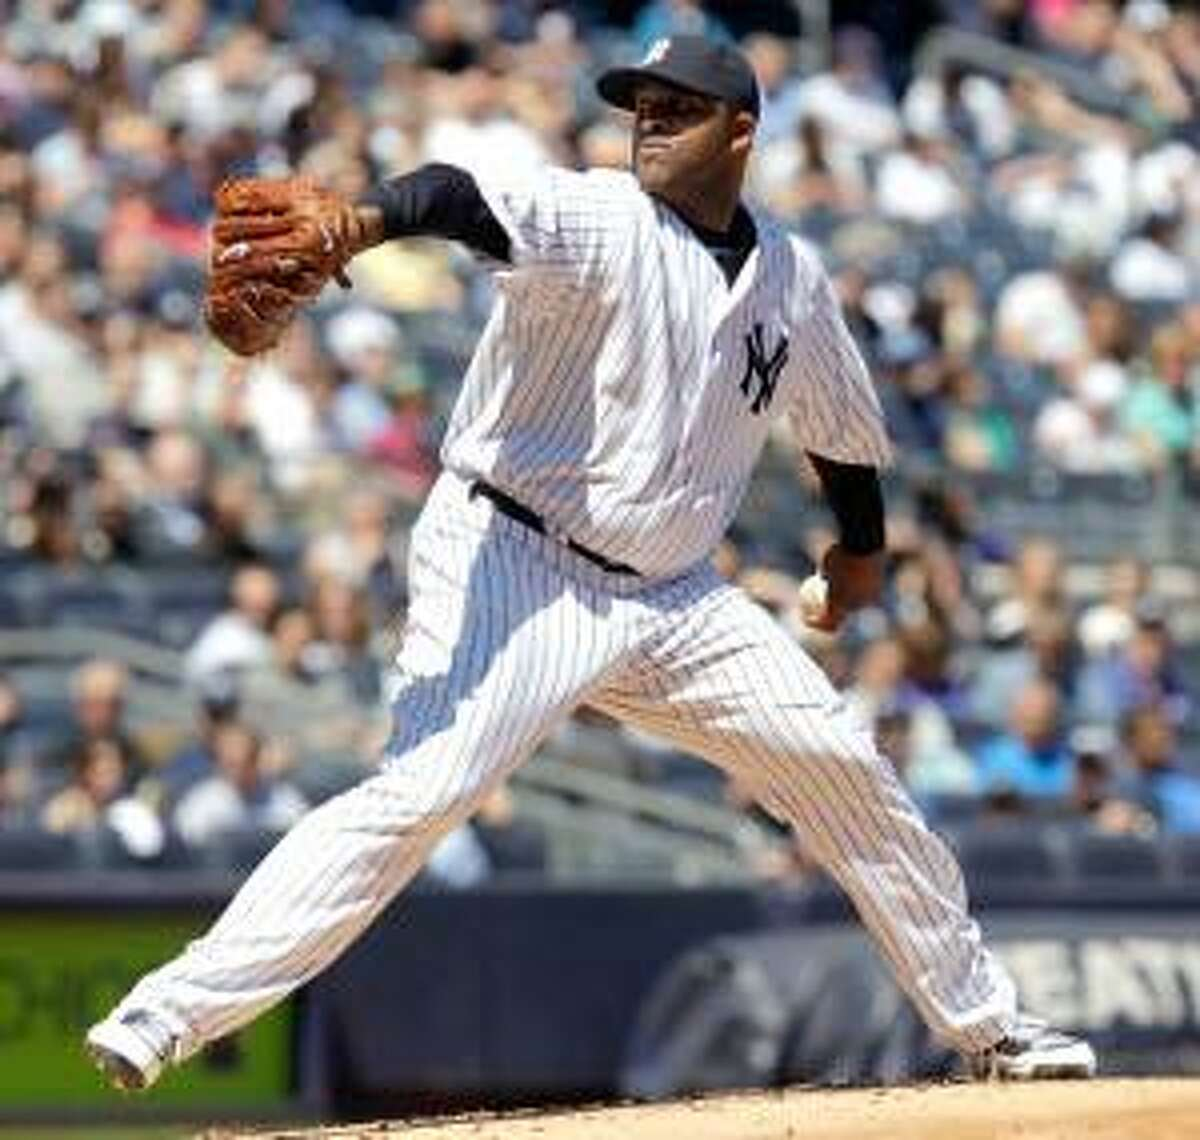 ASSOCIATED PRESS New York Yankees starting pitcher CC Sabathia winds up during the second inning of Sunday's game against the Detroit Tigers at Yankee Stadium in New York. The Yankees won the game 6-2.